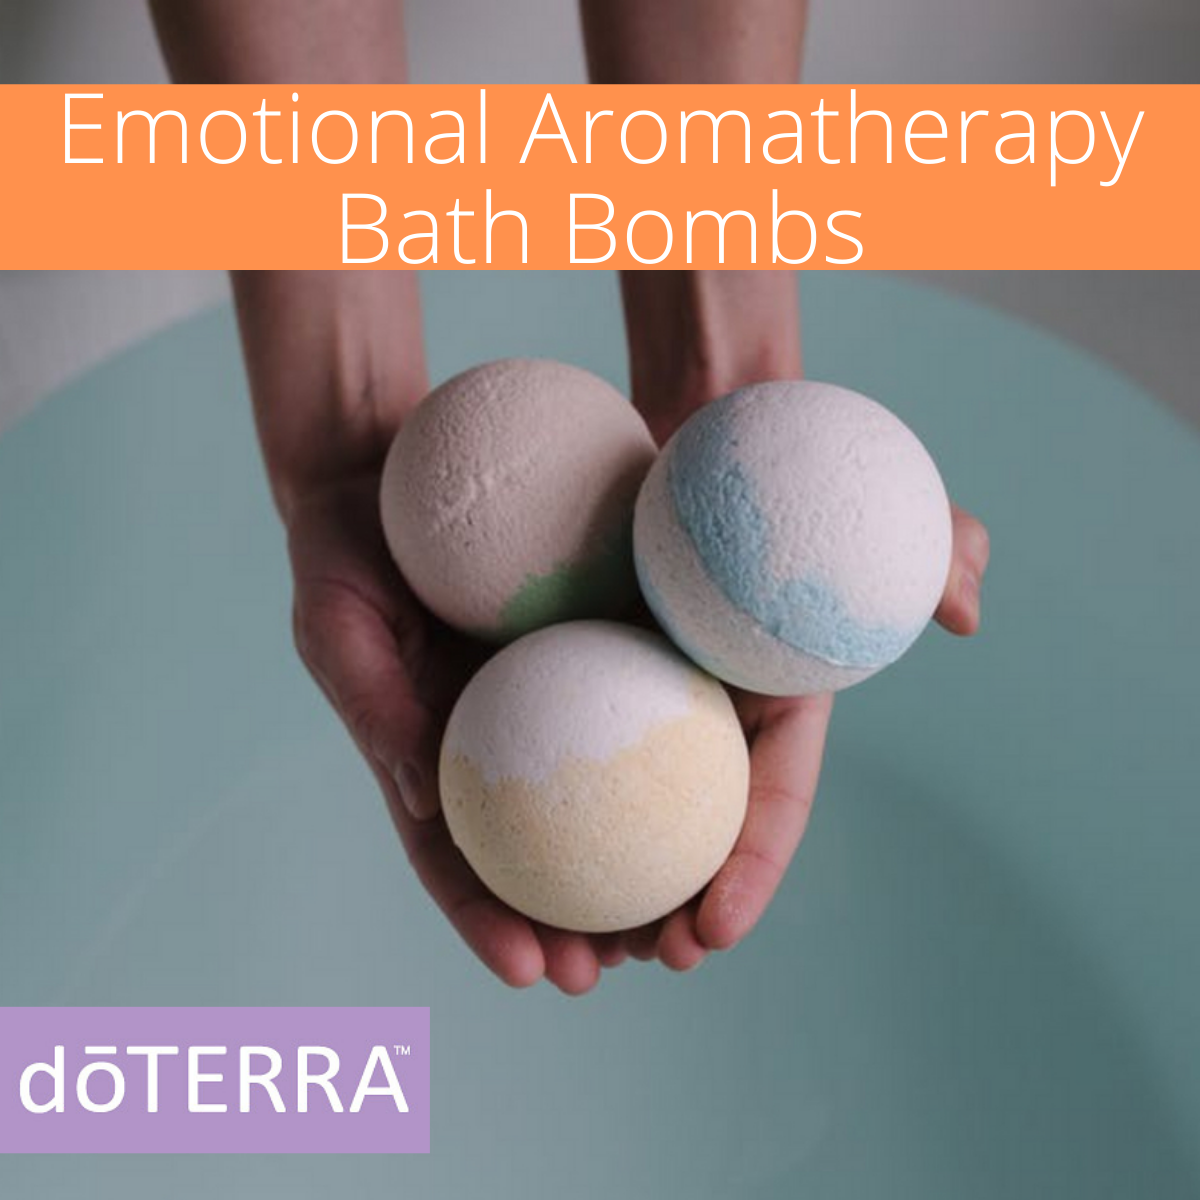 Emotional Aromatherapy Bath Bombs